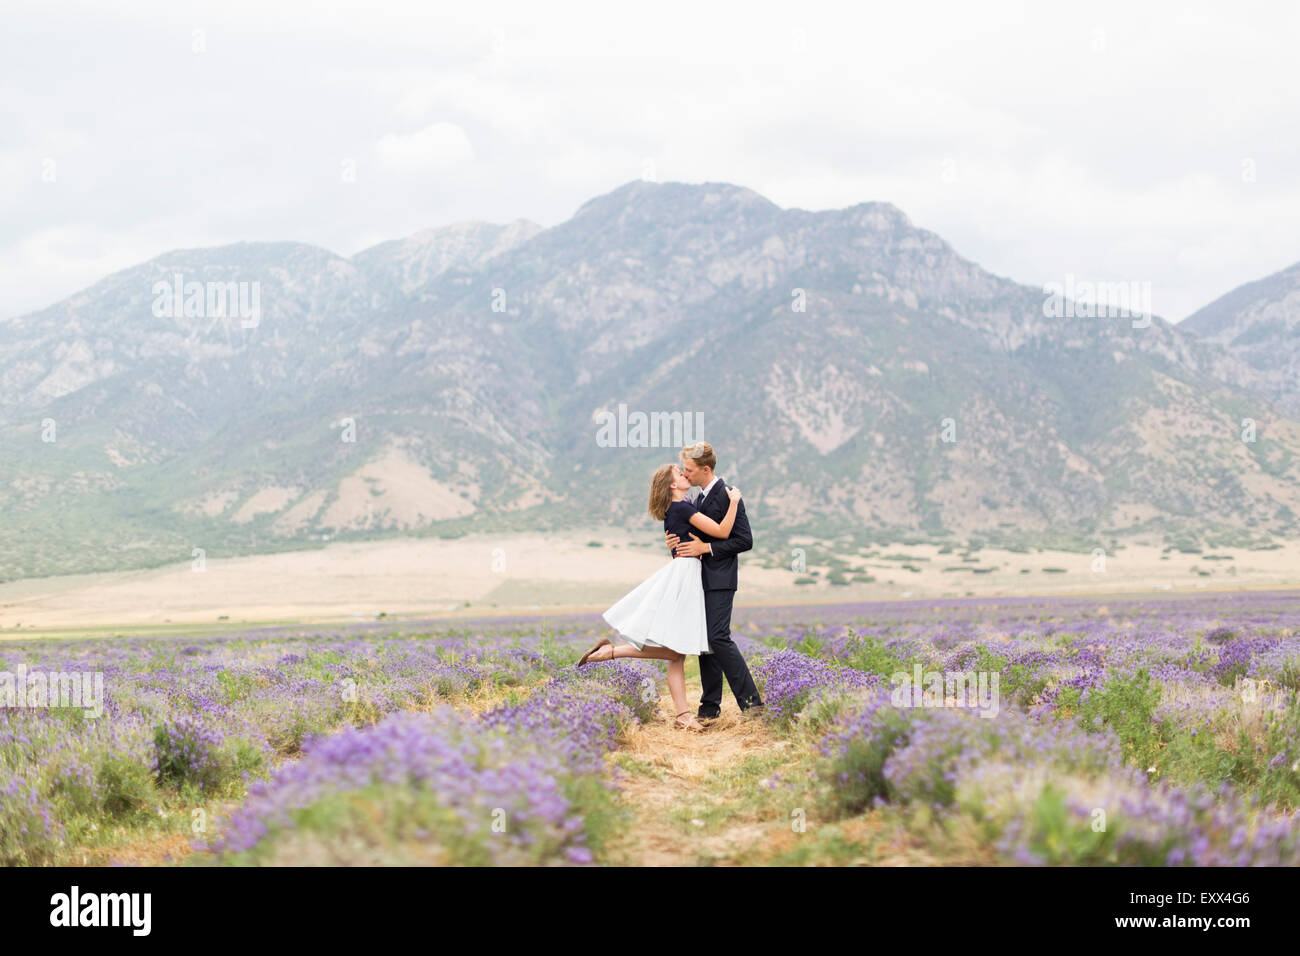 Newlywed couple kissing in lavender field with mountains on background - Stock Image